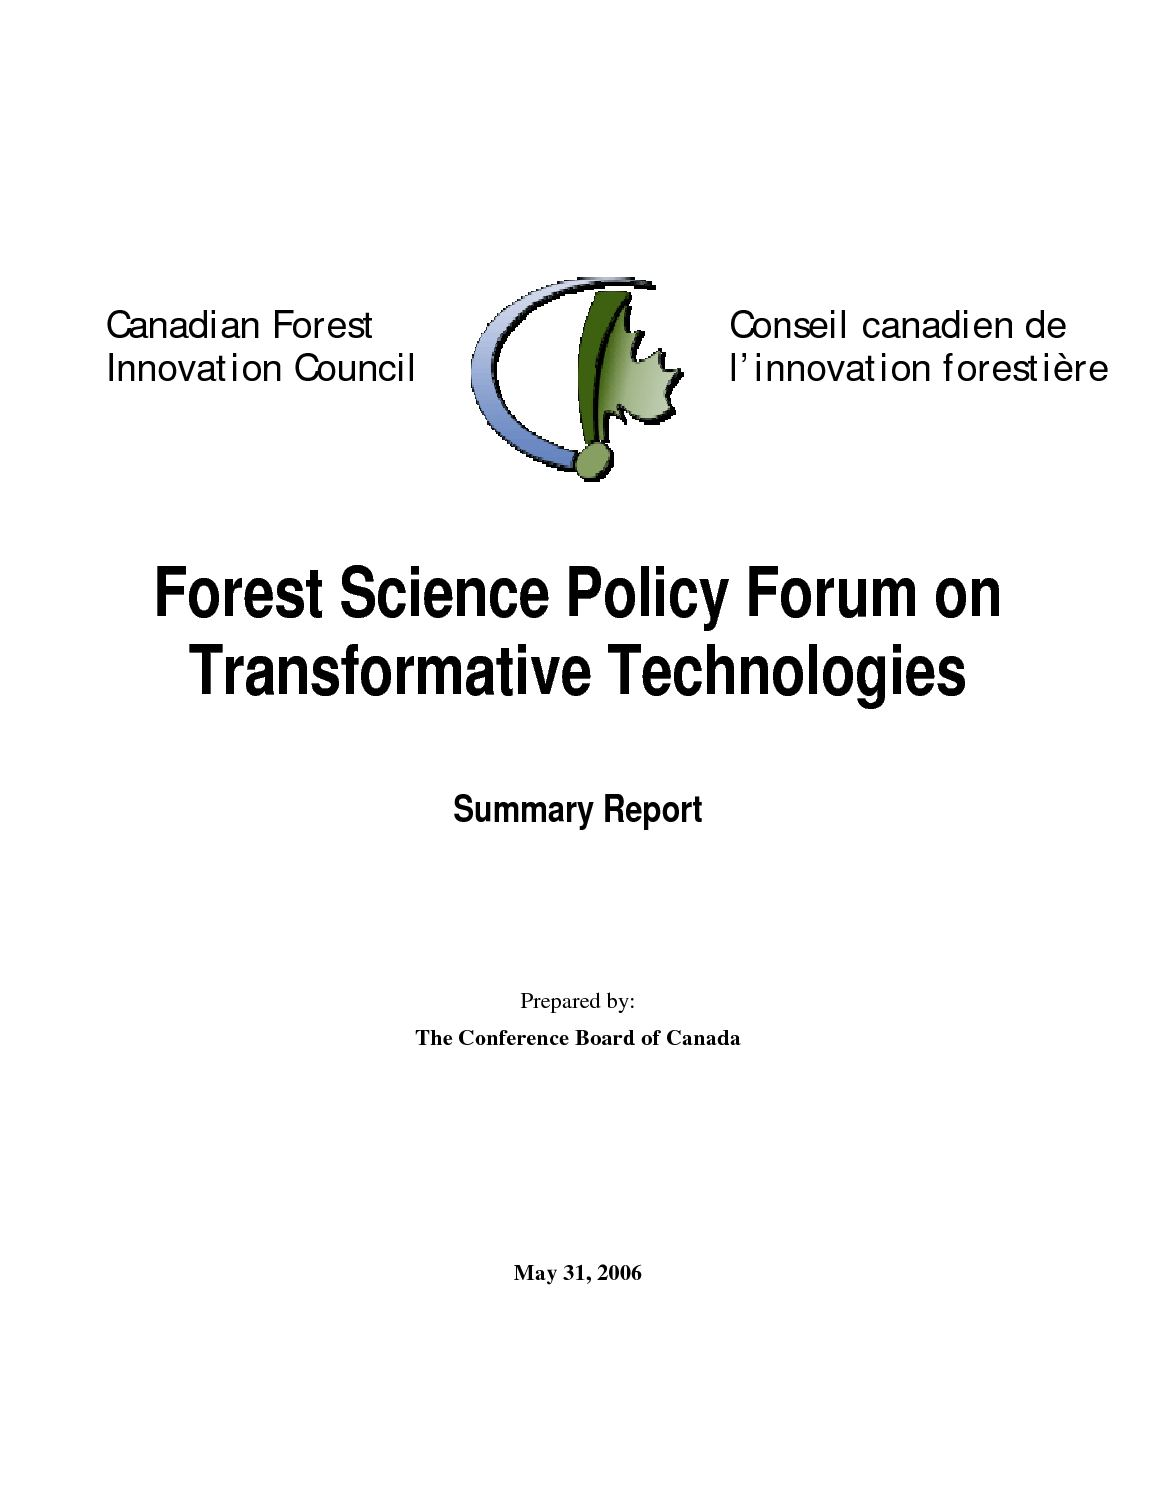 calameo forest science policy forum on transformative technologies summary report